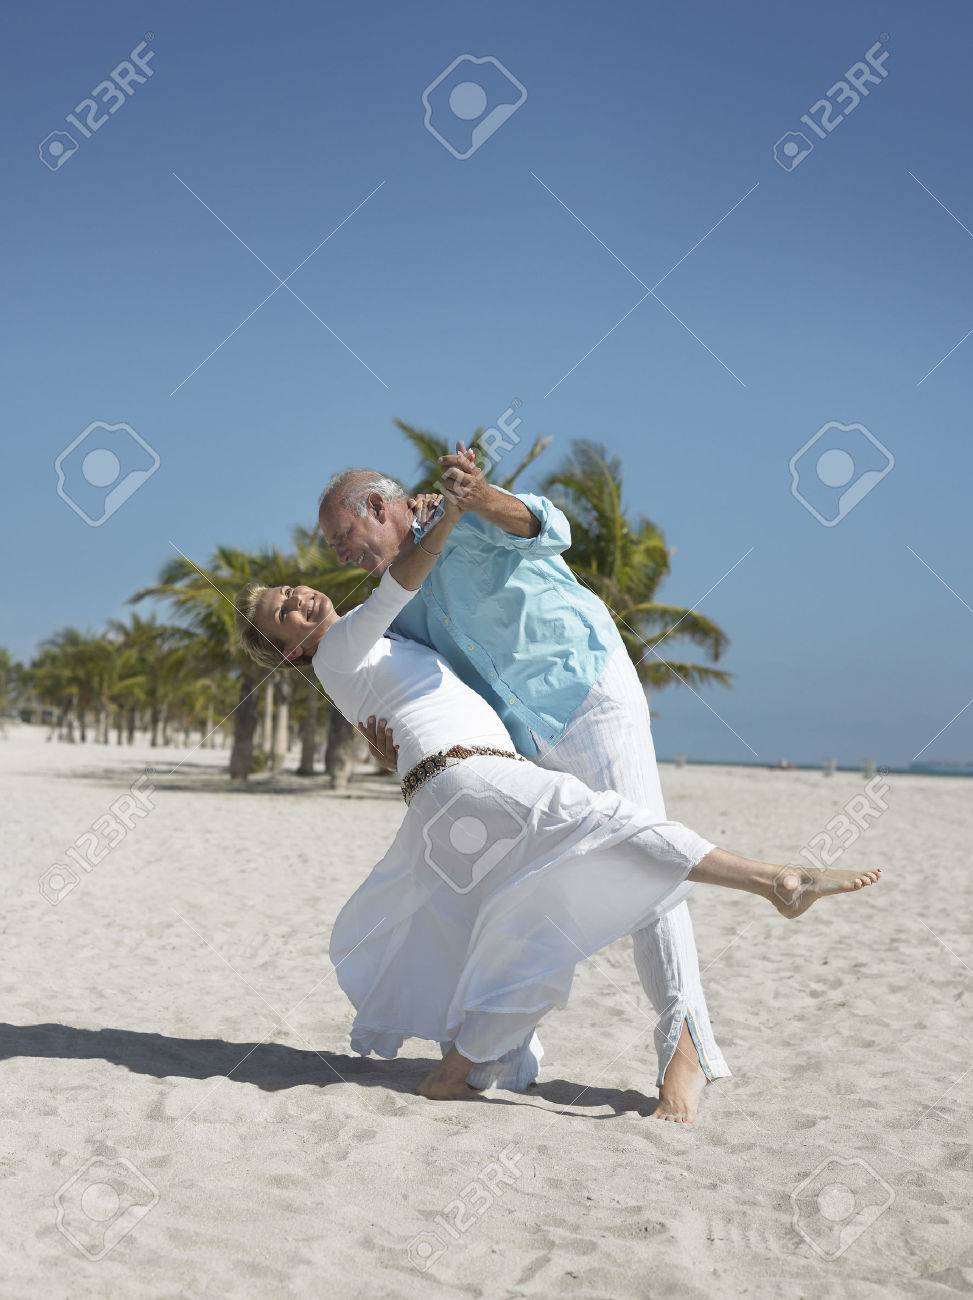 Couple Dancing on the Beach Stock Photo - 5478605